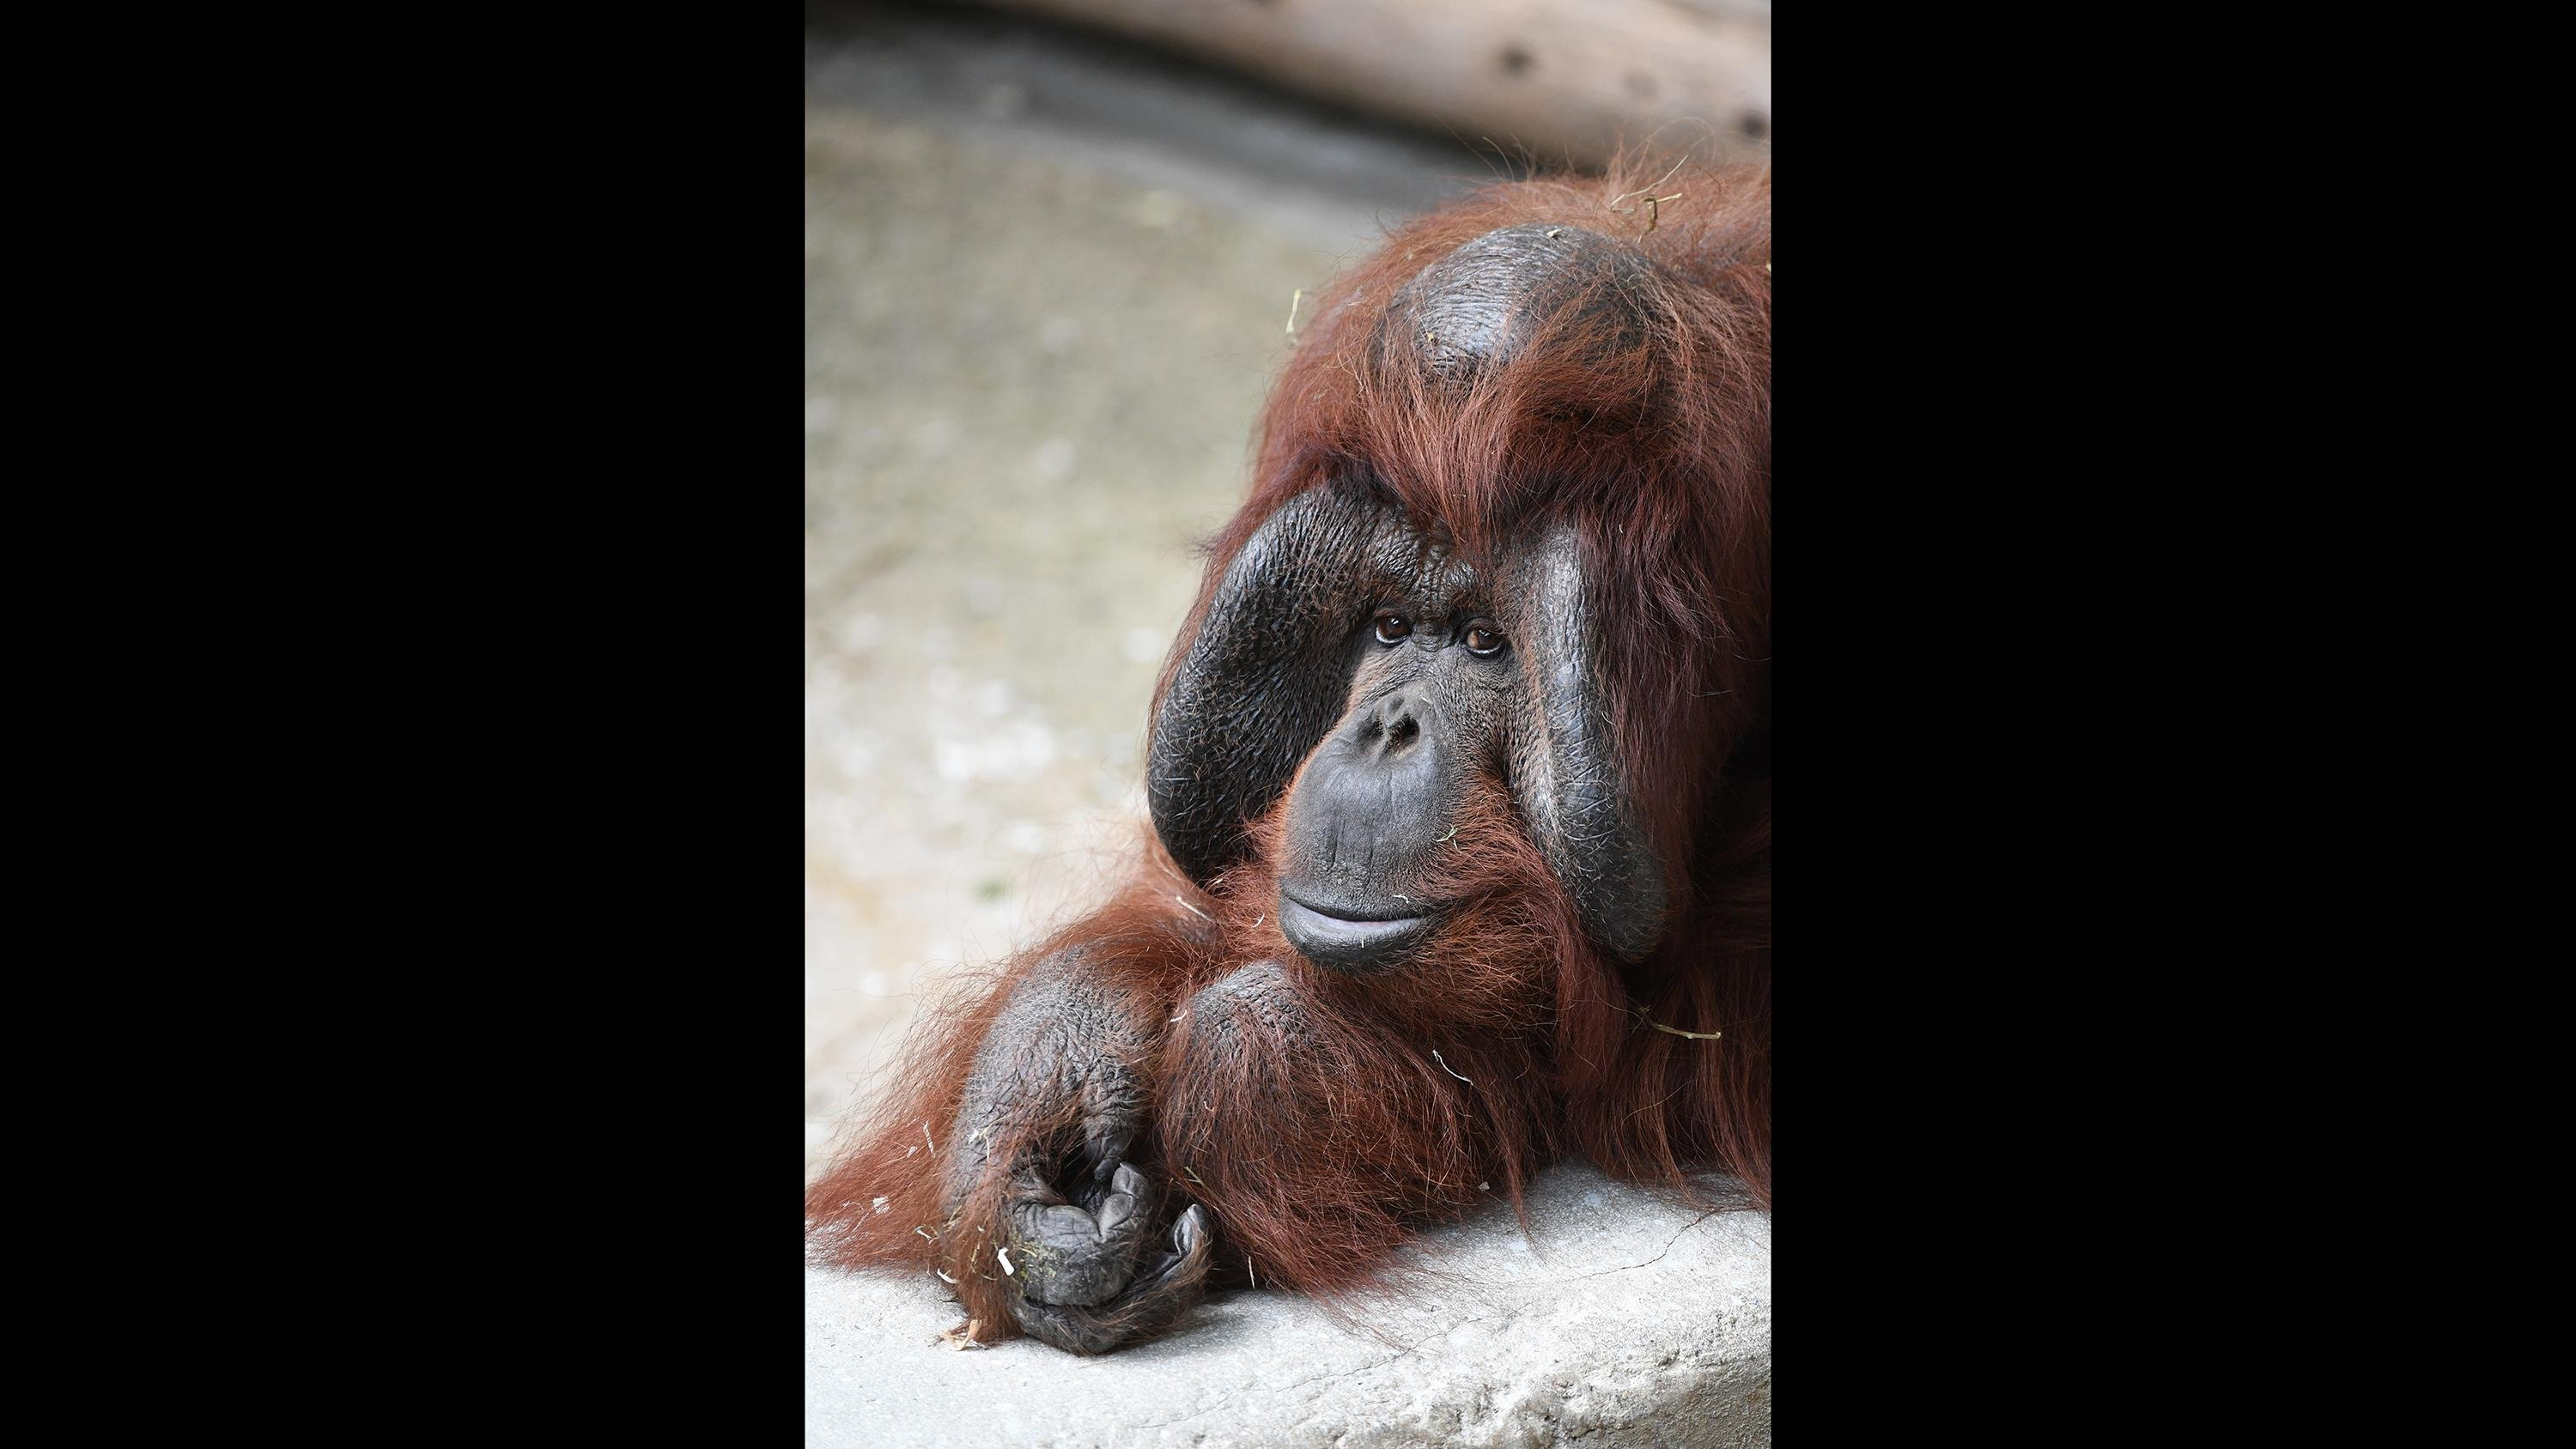 Ben, a 40-year-old orangutan at Brookfield Zoo. (Jim Schulz / Chicago Zoological Society)